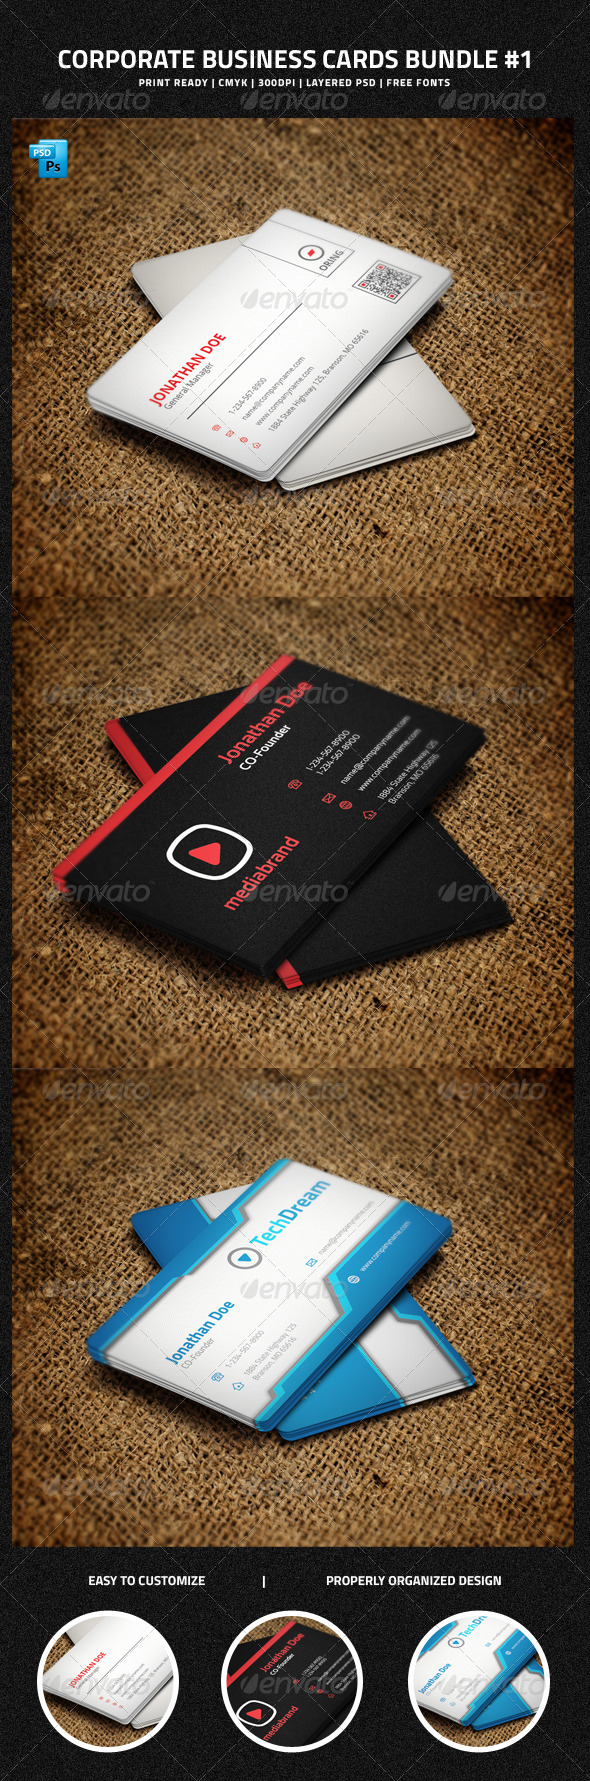 Corporate Business Cards Bundle #1 - Corporate Business Cards